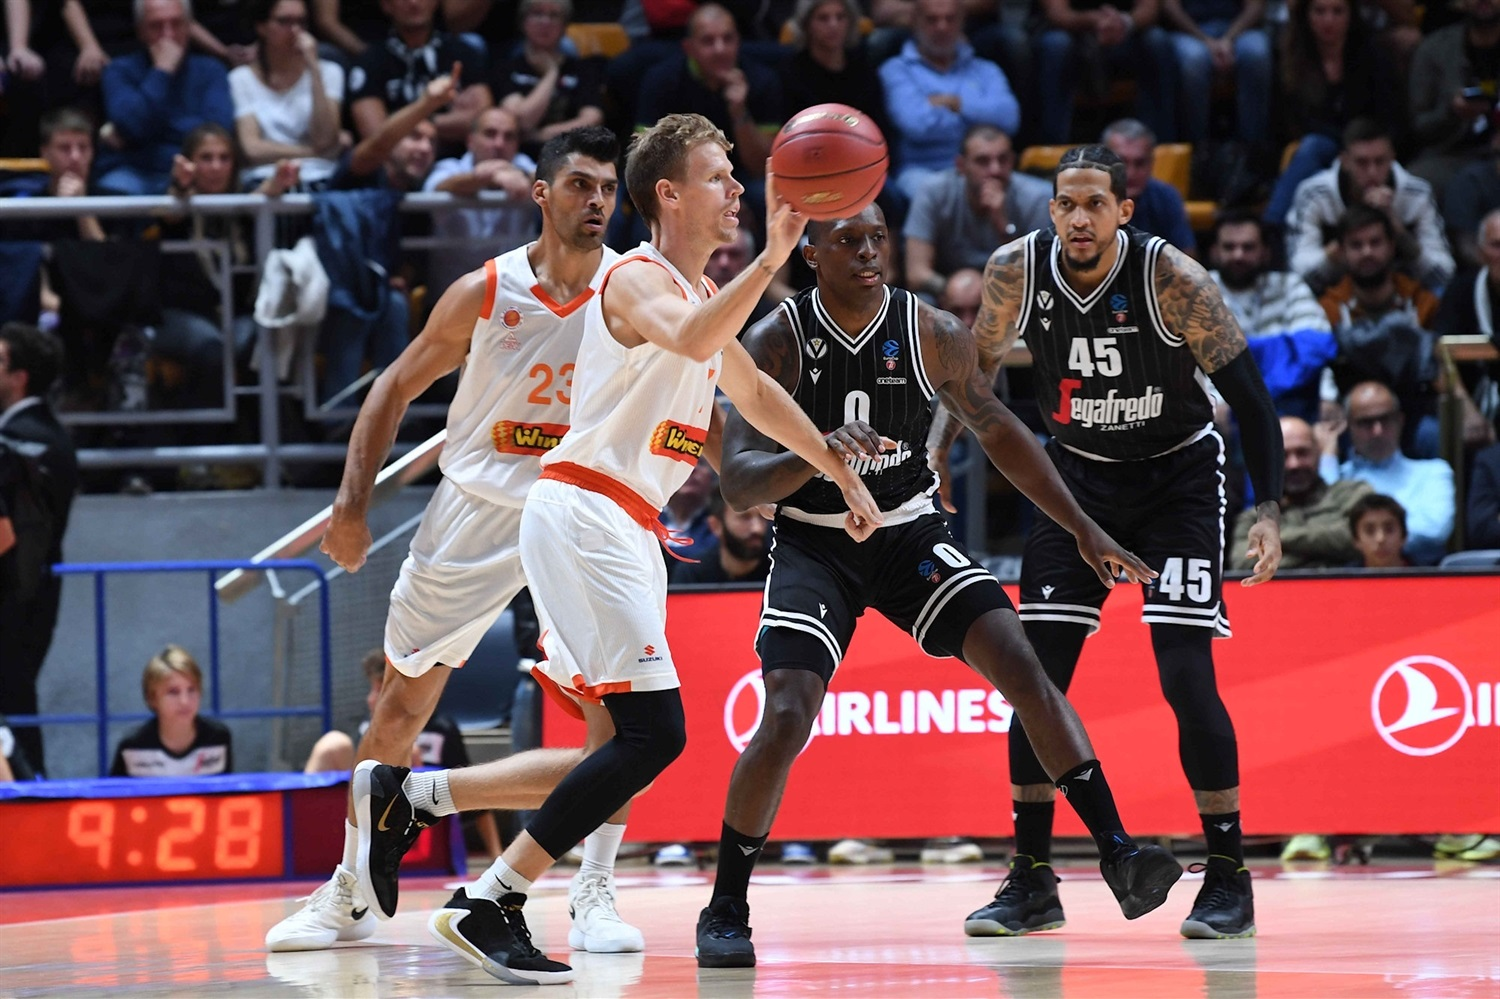 Jordan Swing - Maccabi Rishon Lezion (photo Virtus) - EC19